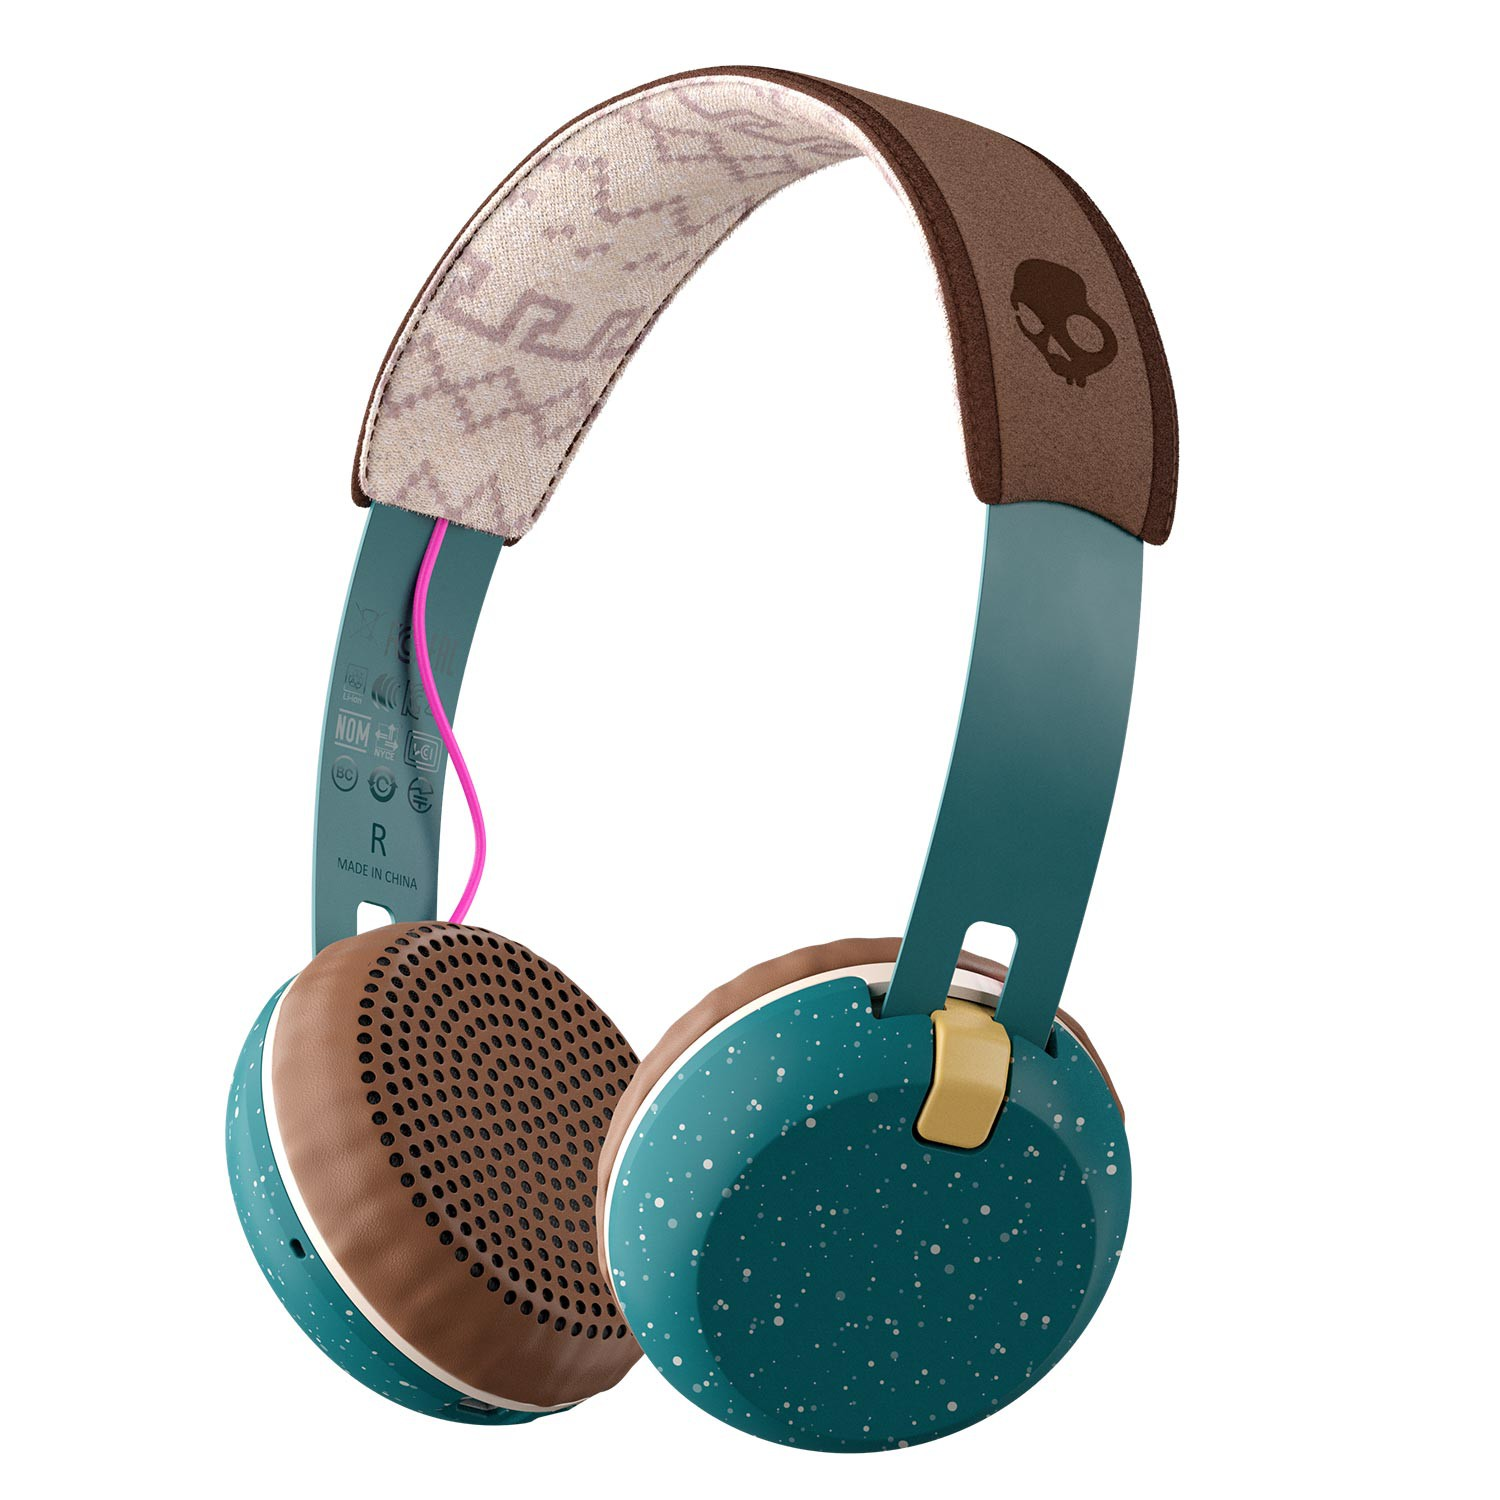 Sluchátka Skullcandy Grind Wireless blue/brown